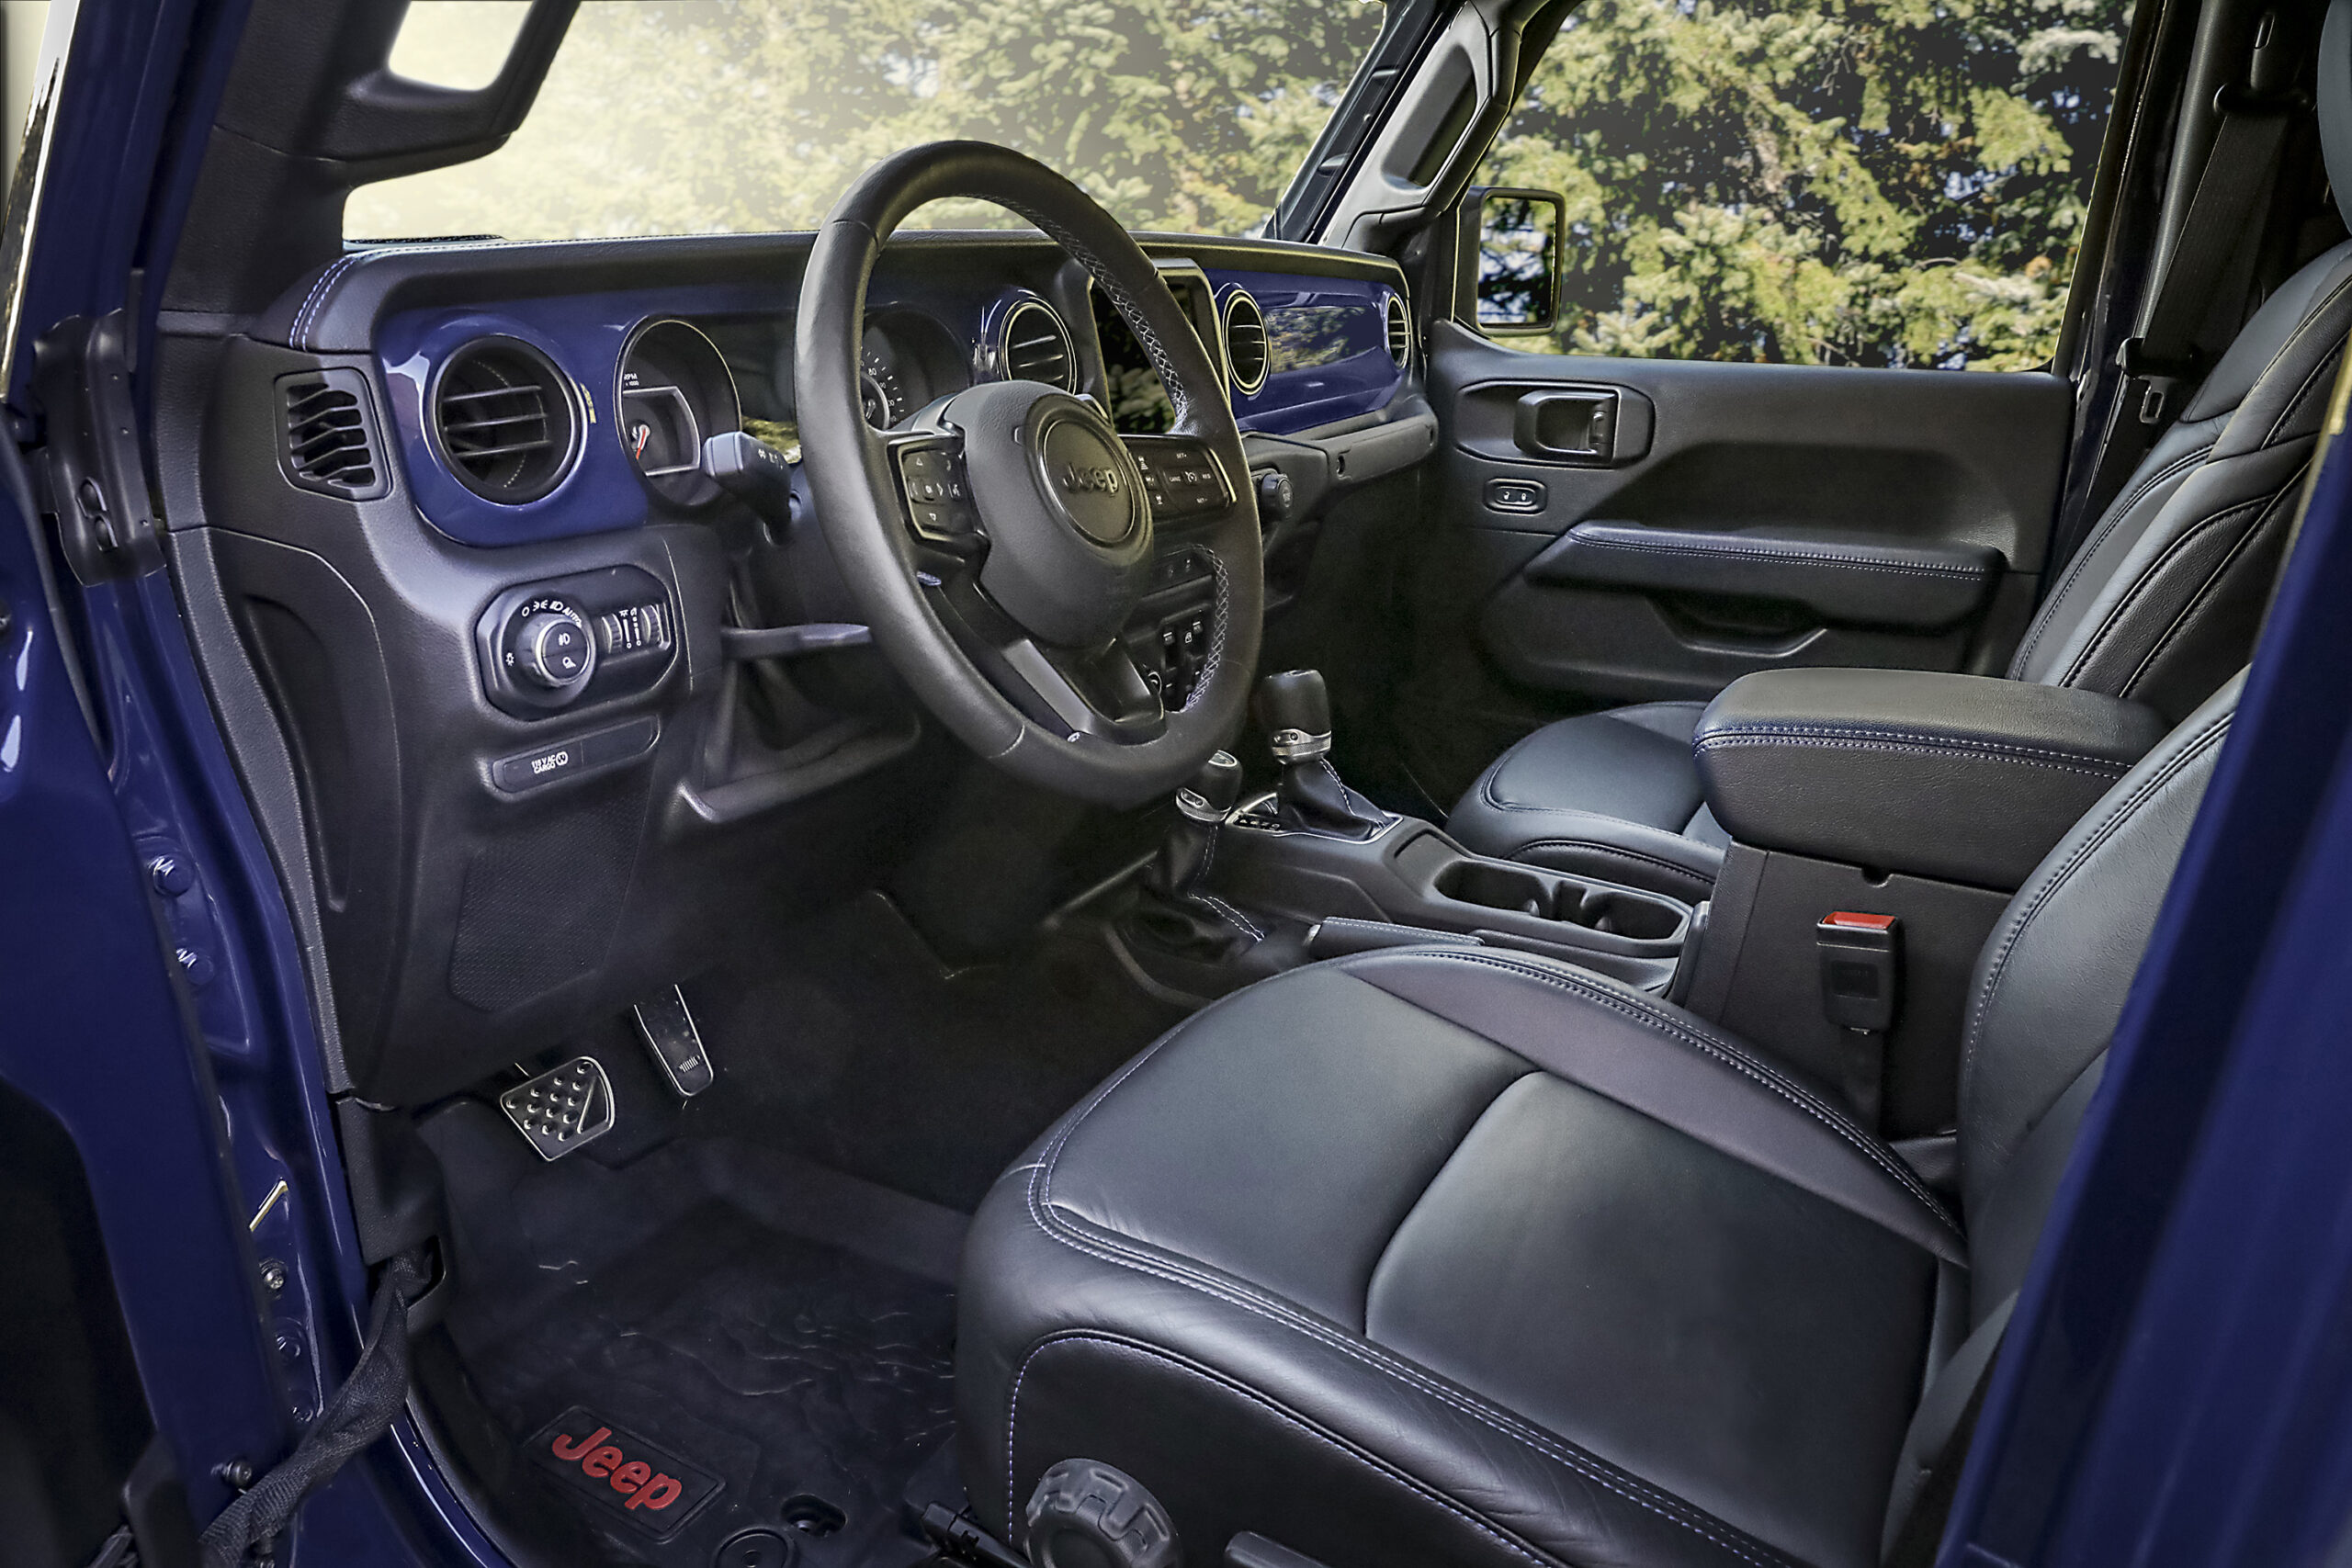 Inside the cabin of the Jeep Gladiator Top Dog concept, the exte